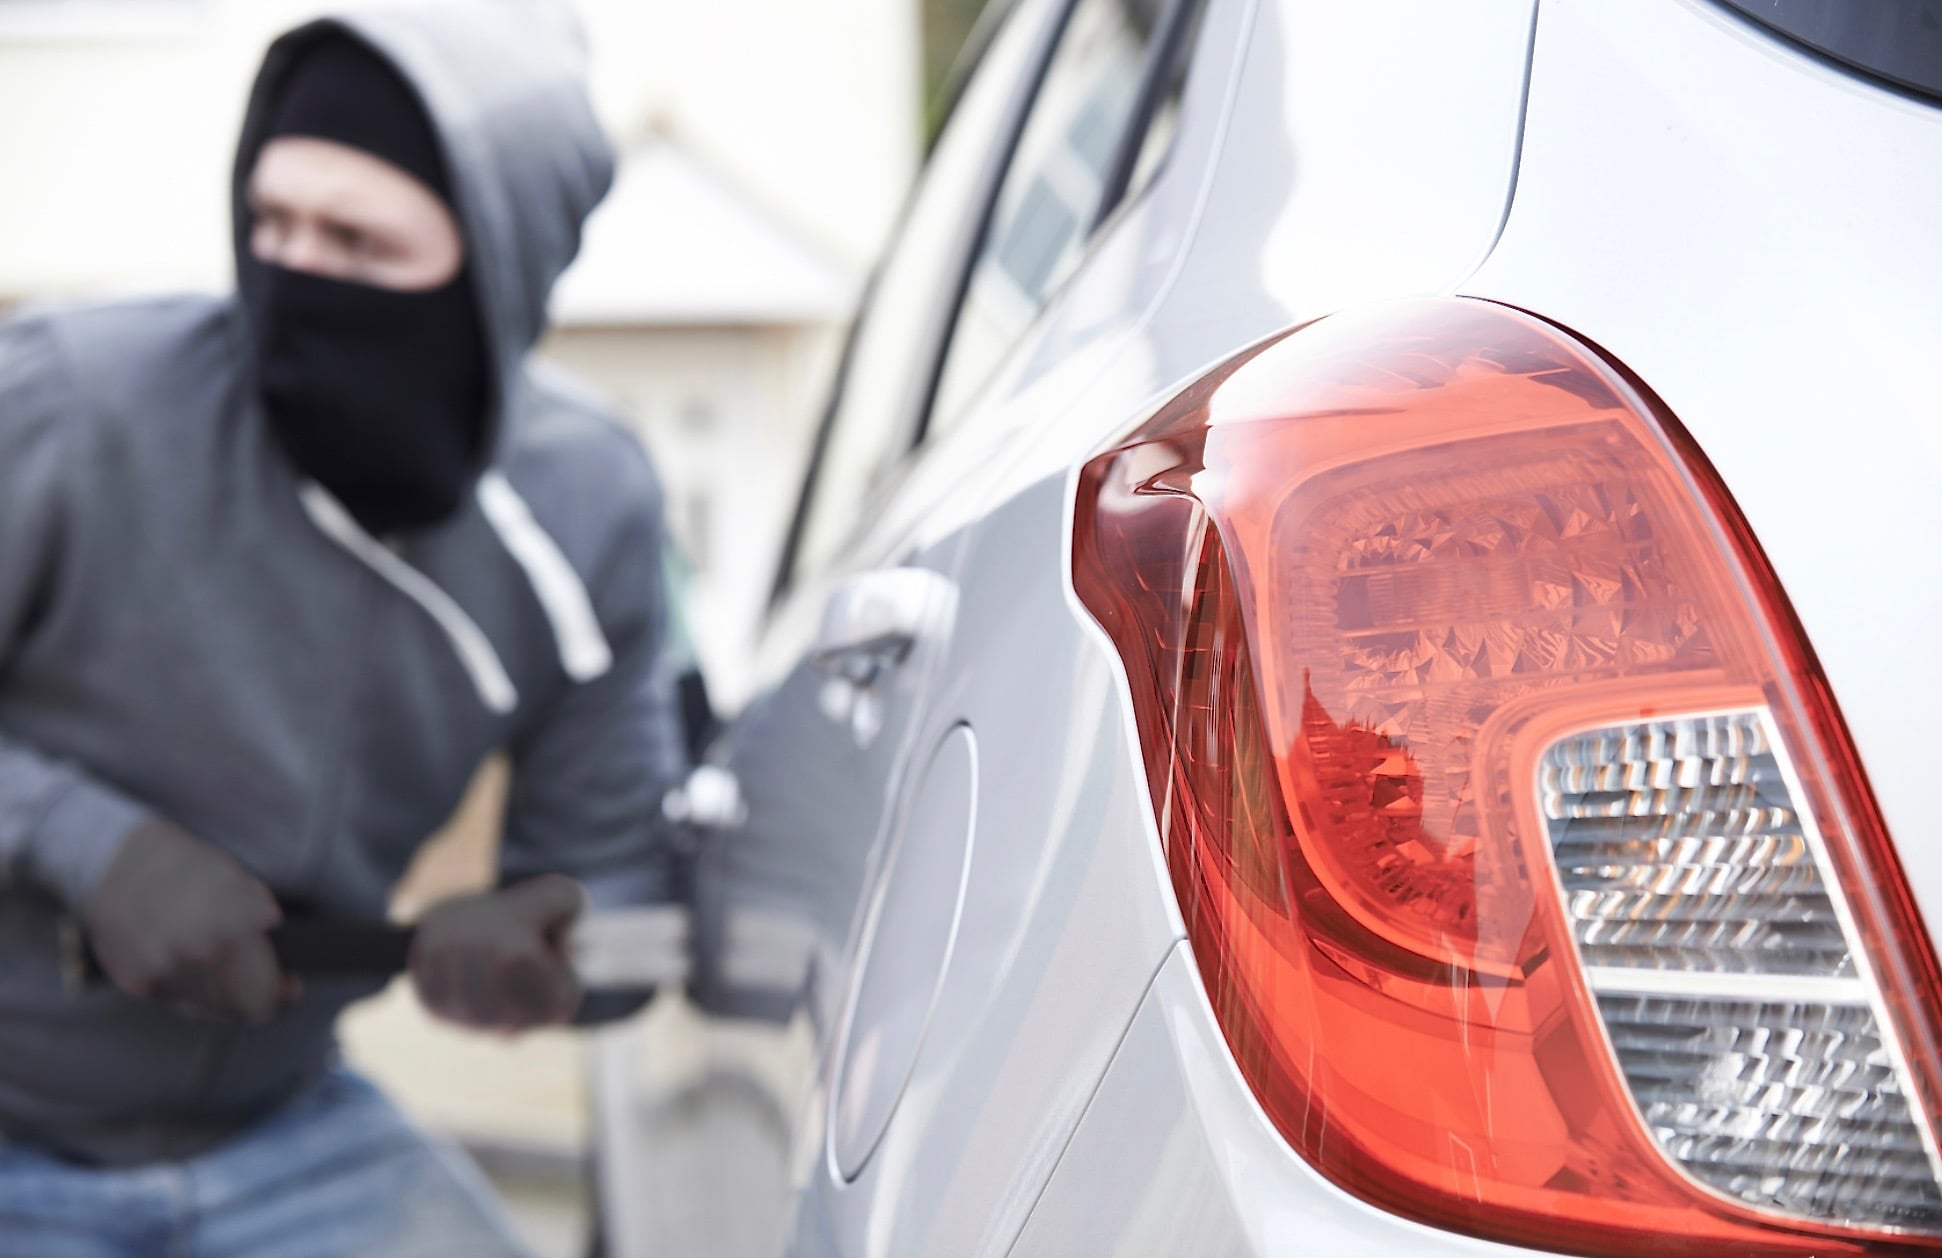 Discussion on this topic: How to Avoid Car Theft, how-to-avoid-car-theft/